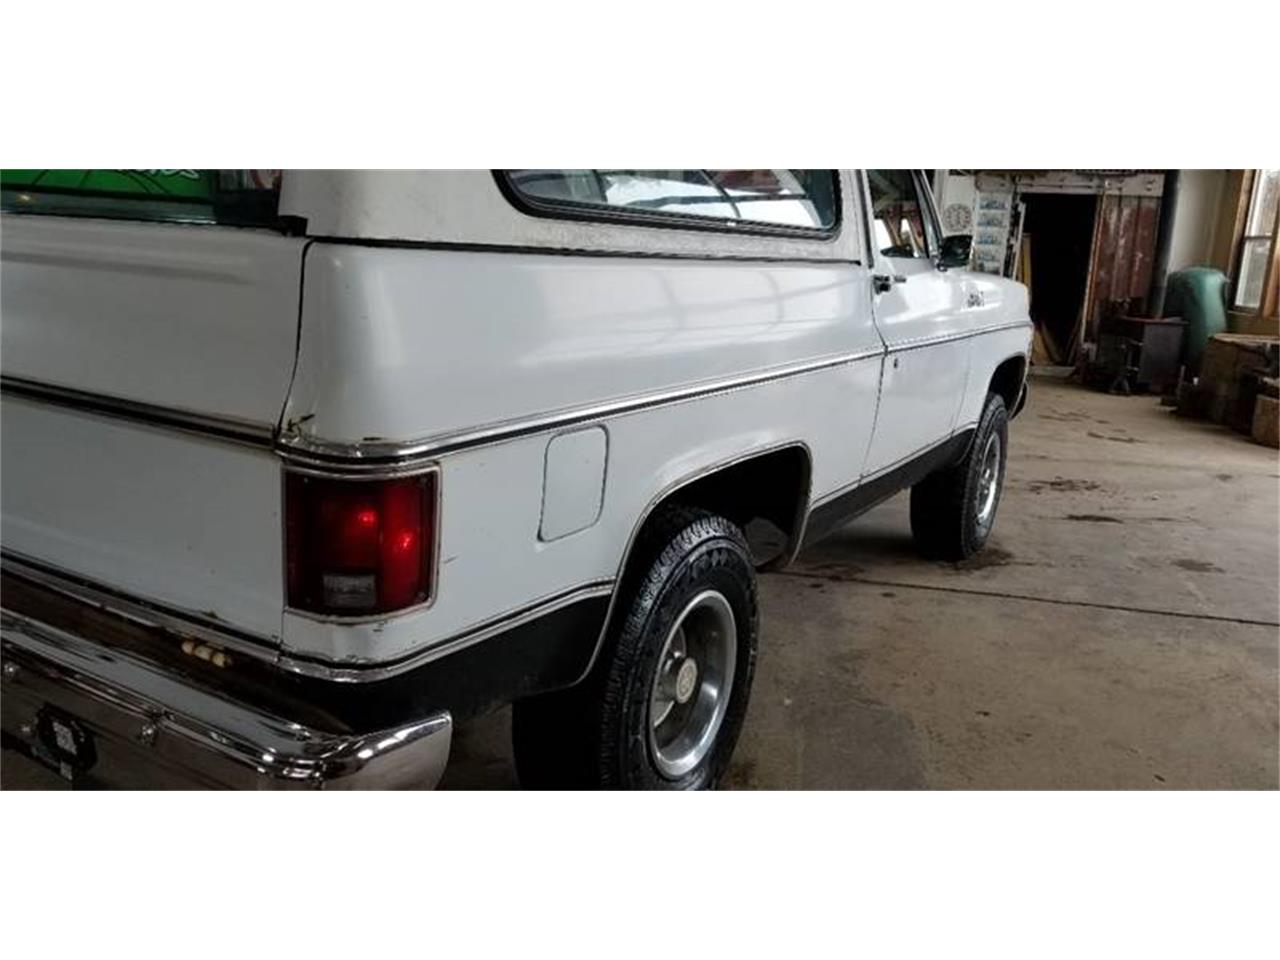 Large Picture of 1979 GMC Jimmy located in Redmond Oregon - $12,500.00 Offered by Cool Classic Rides LLC - QTVF